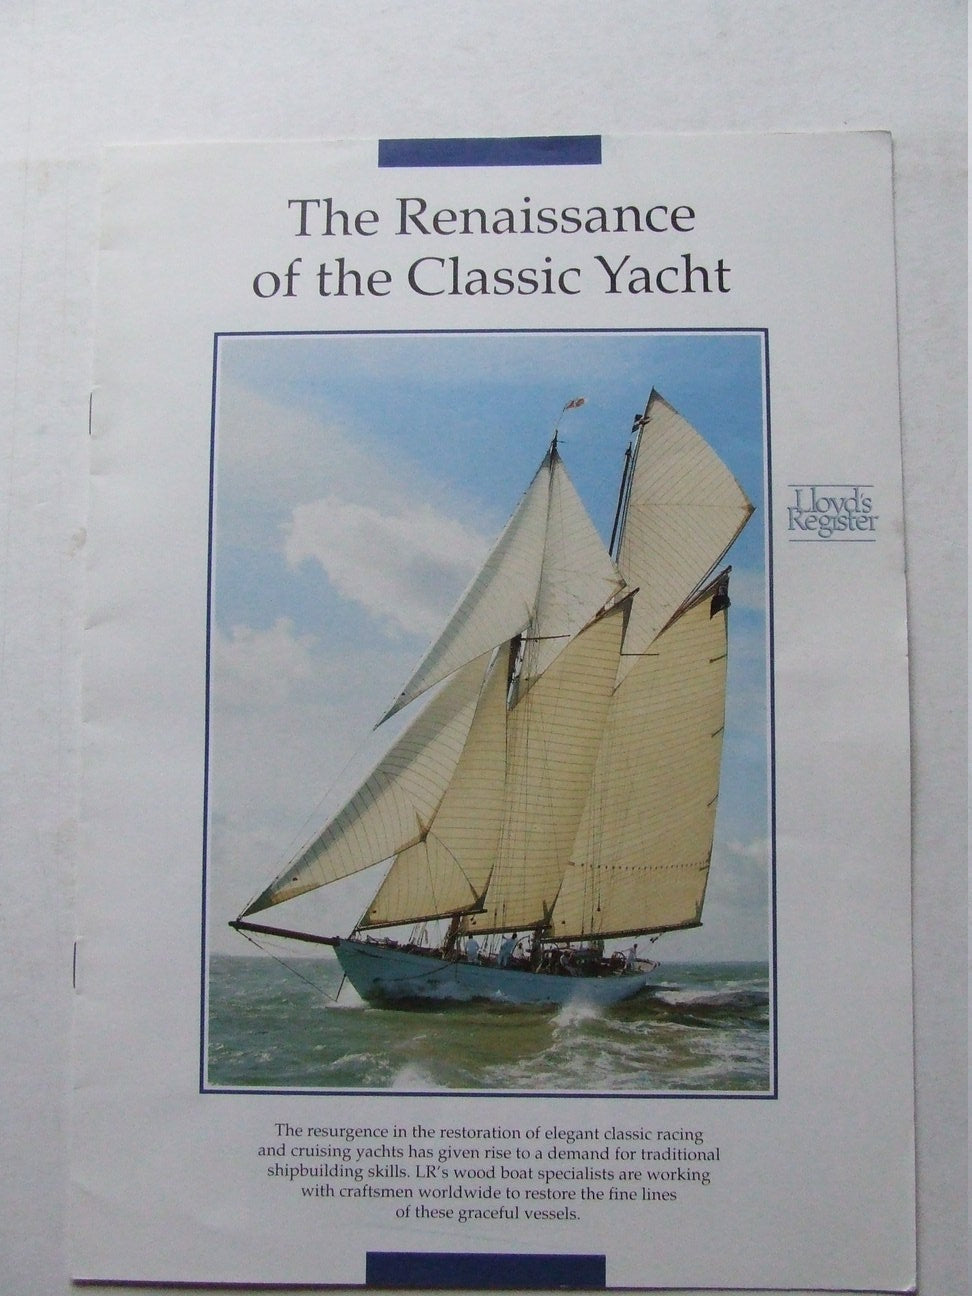 The Renaissance of the Classic Yacht